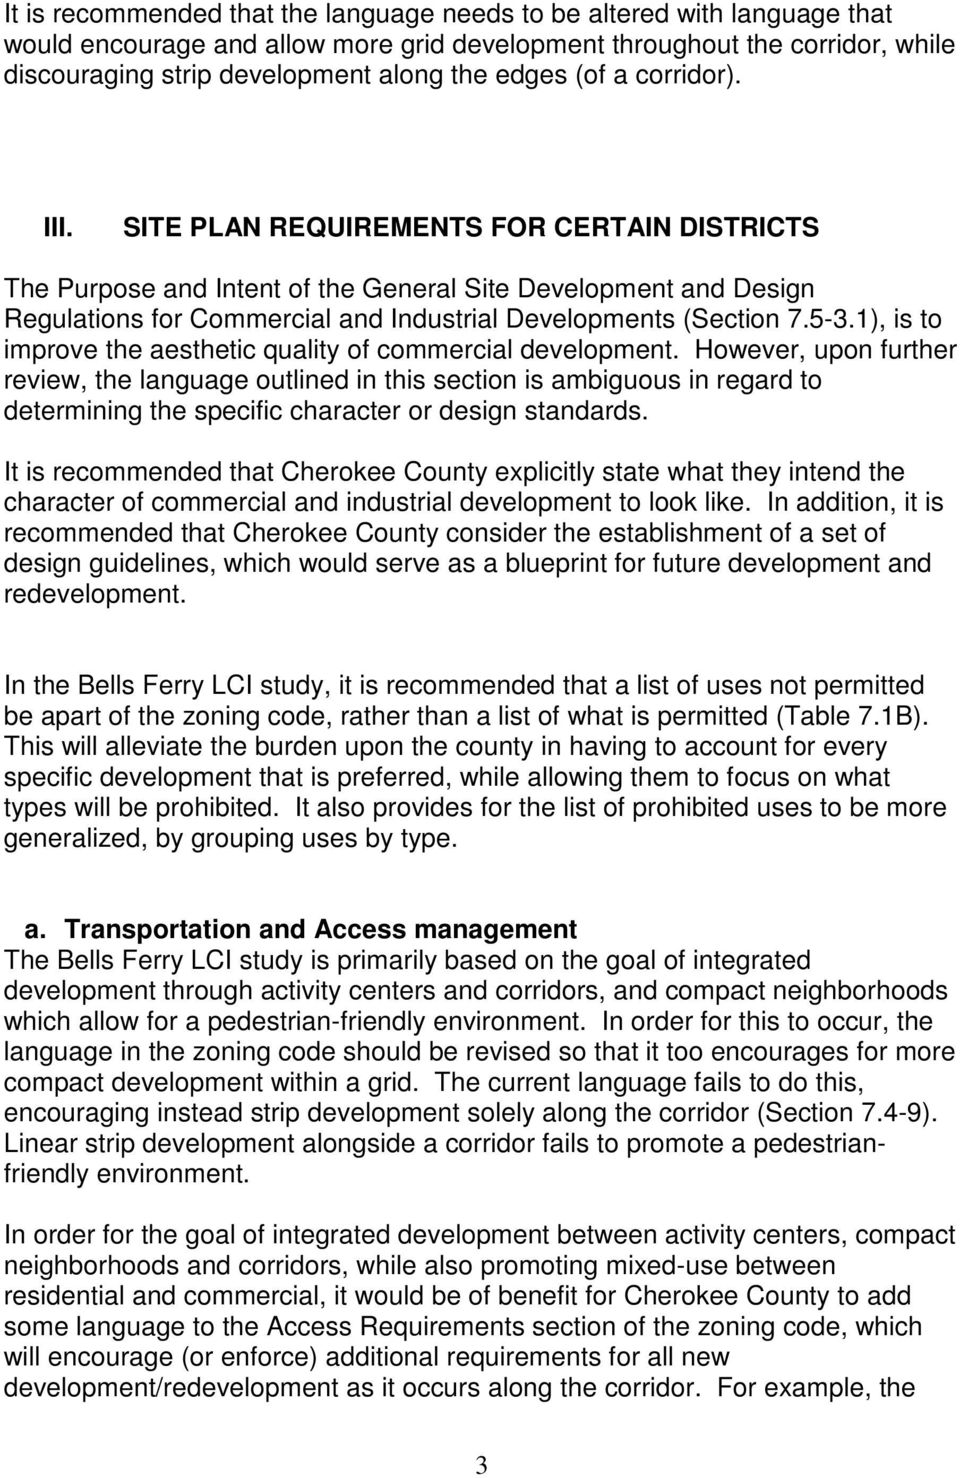 SITE PLAN REQUIREMENTS FOR CERTAIN DISTRICTS The Purpose and Intent of the General Site Development and Design Regulations for Commercial and Industrial Developments (Section 7.5-3.